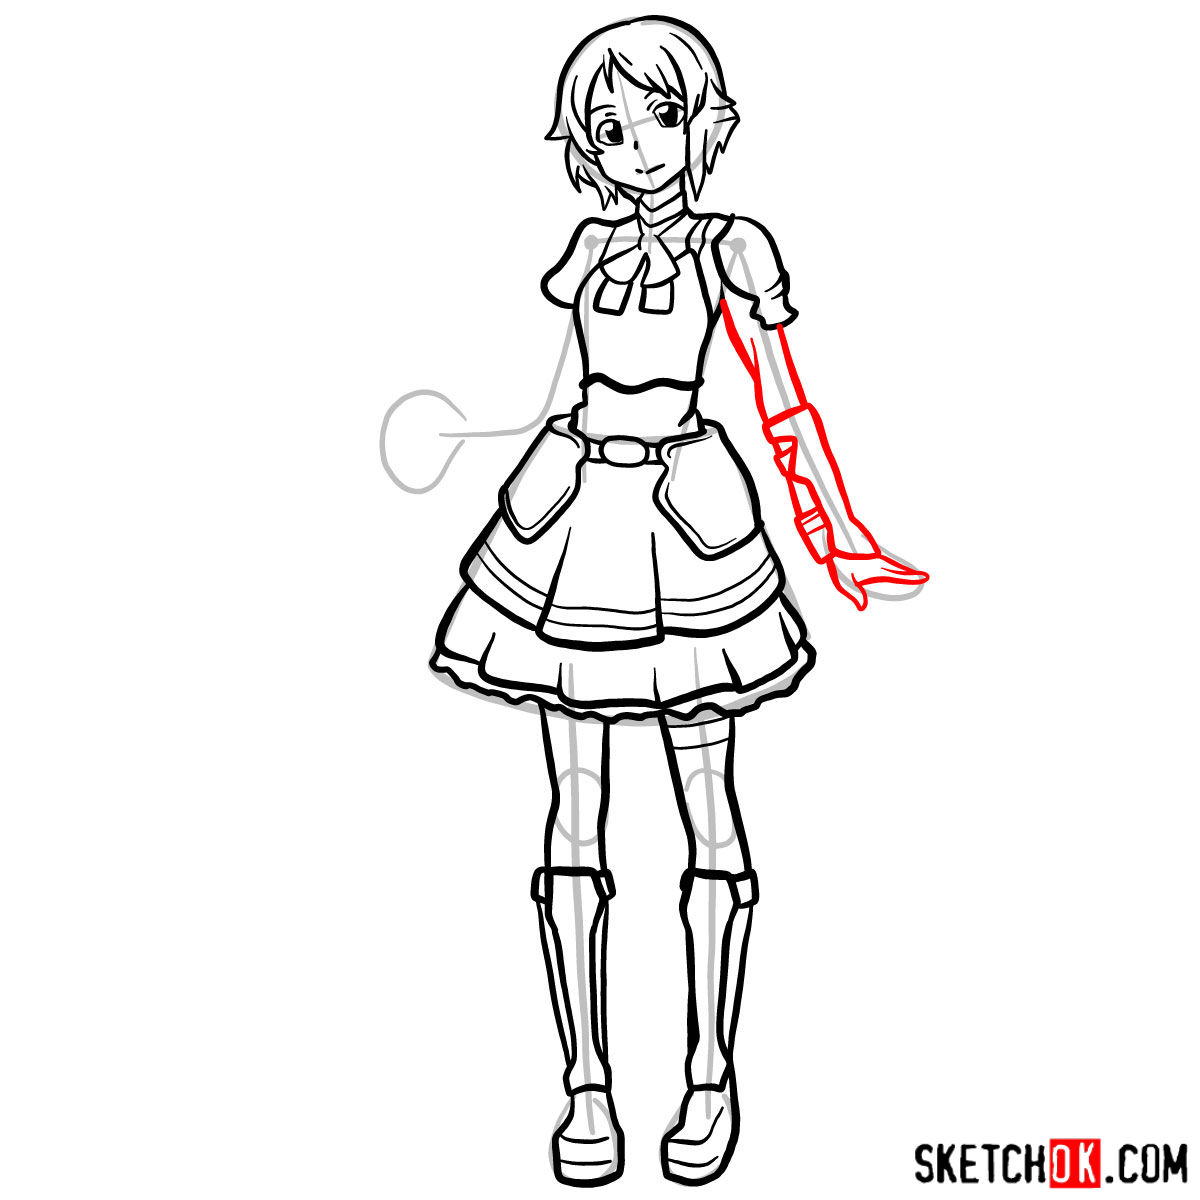 How to draw Lisbeth from Sword Art Online - step 13